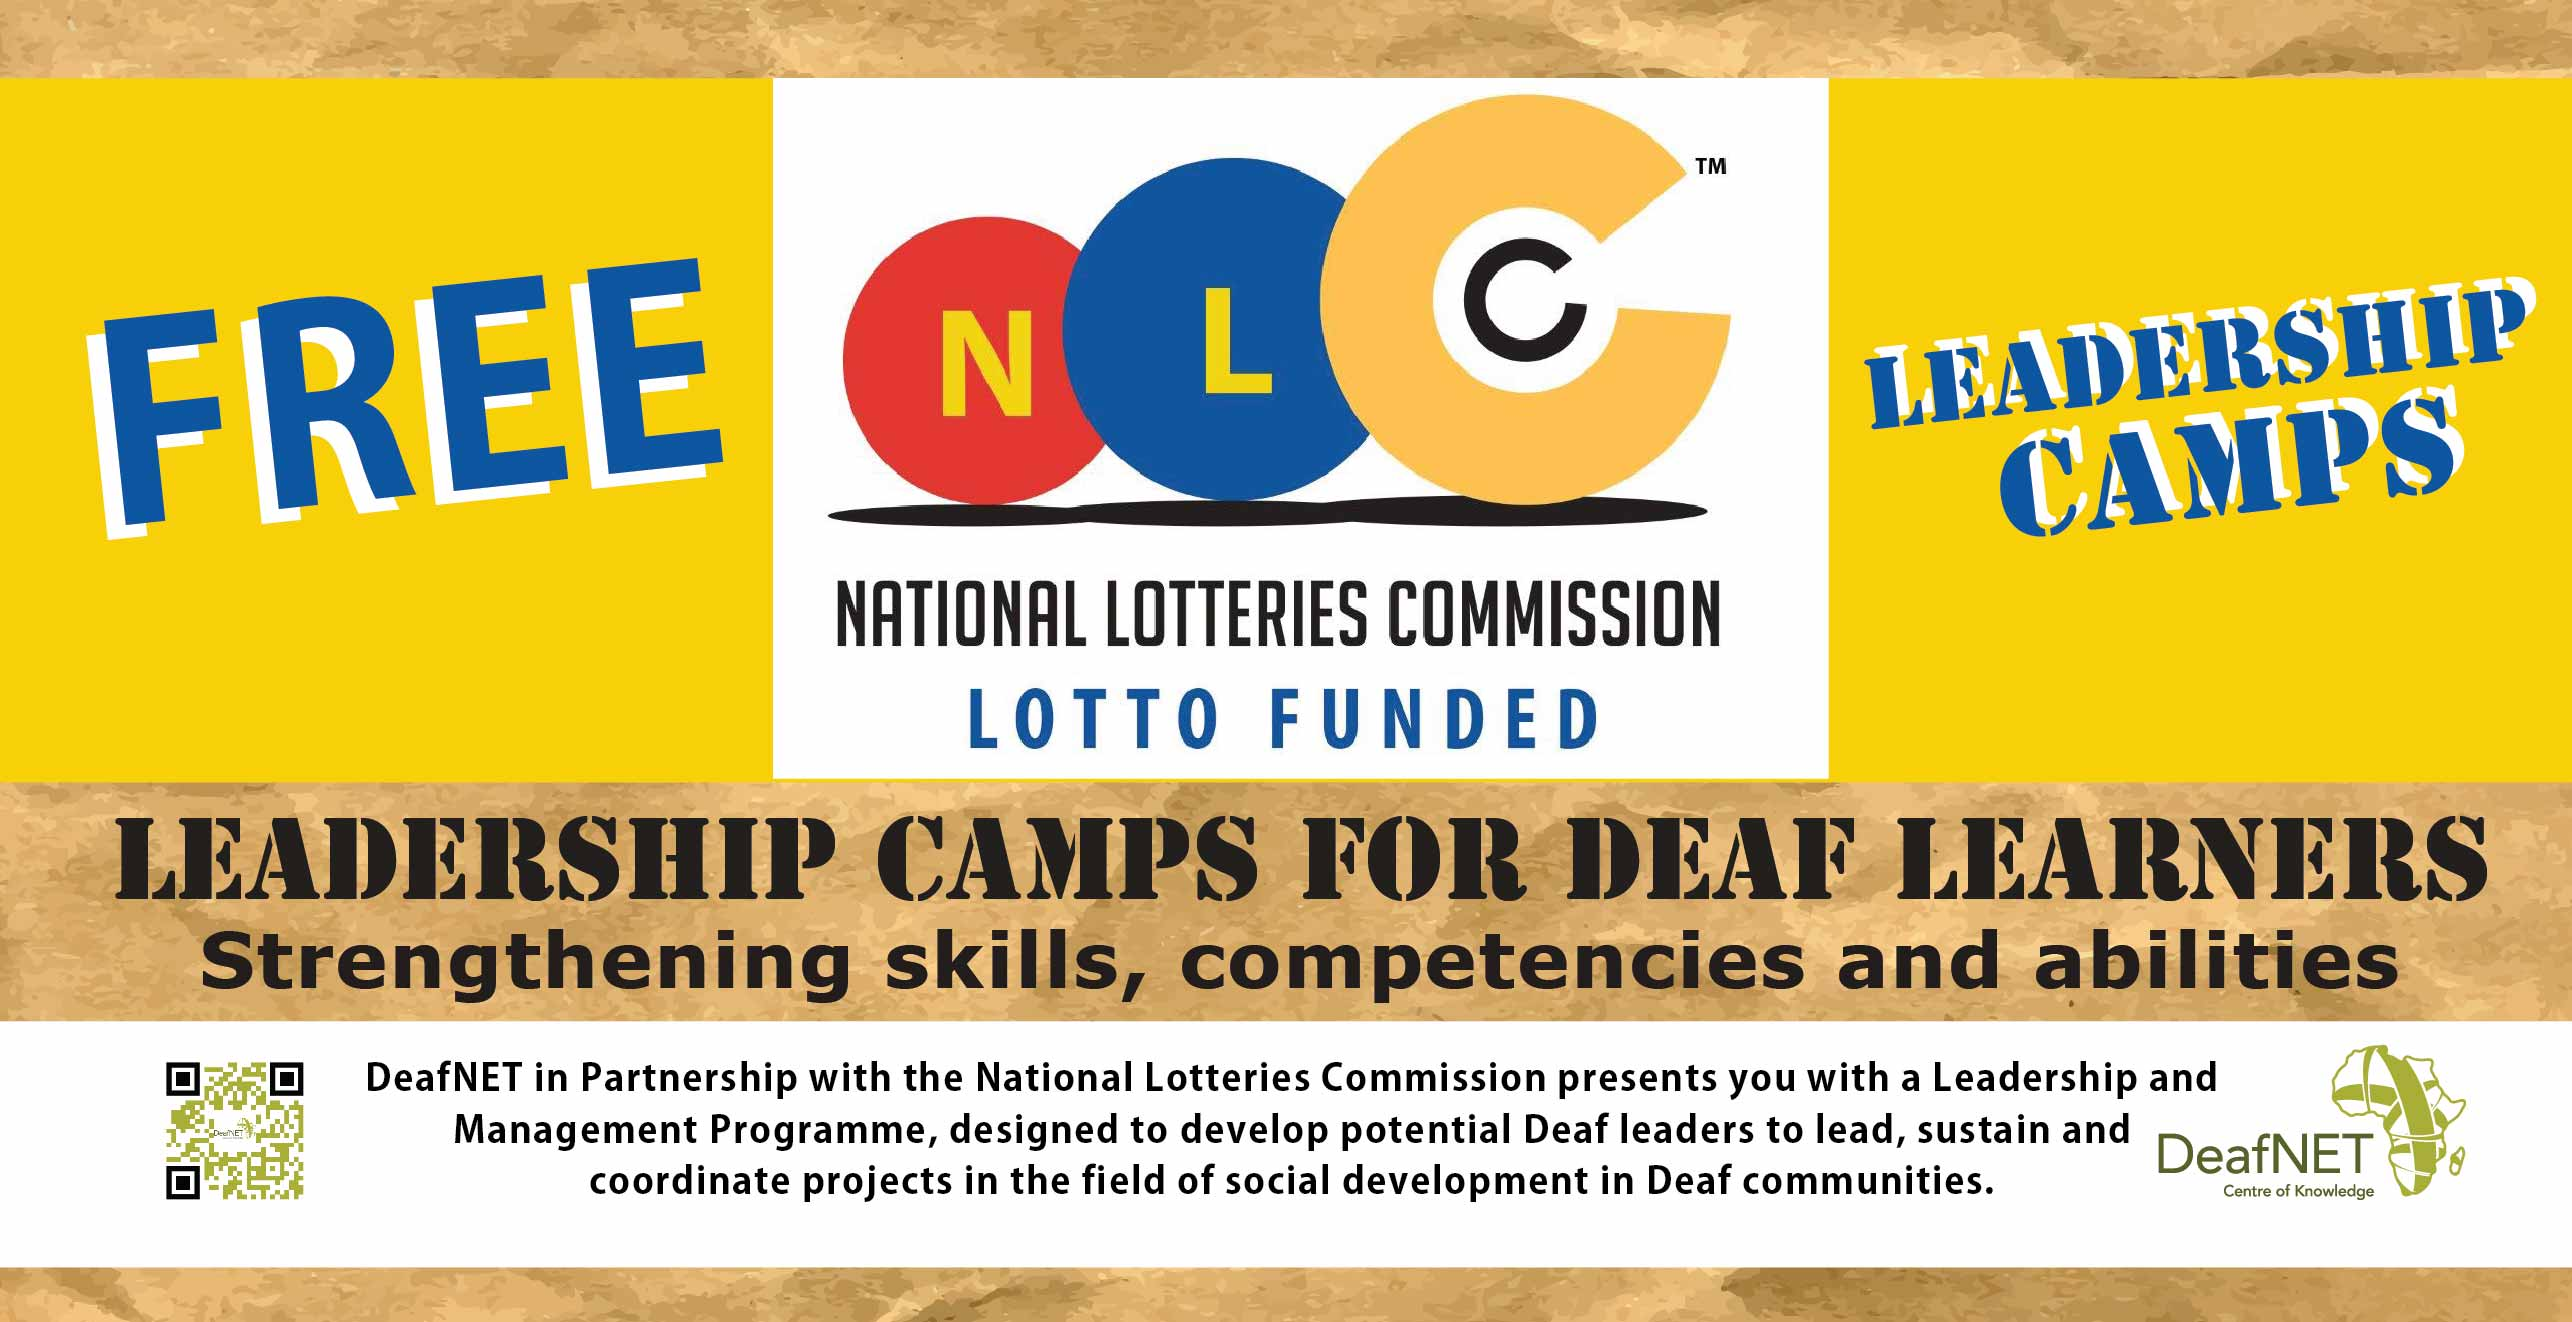 Leadership Camp for Deaf Learners